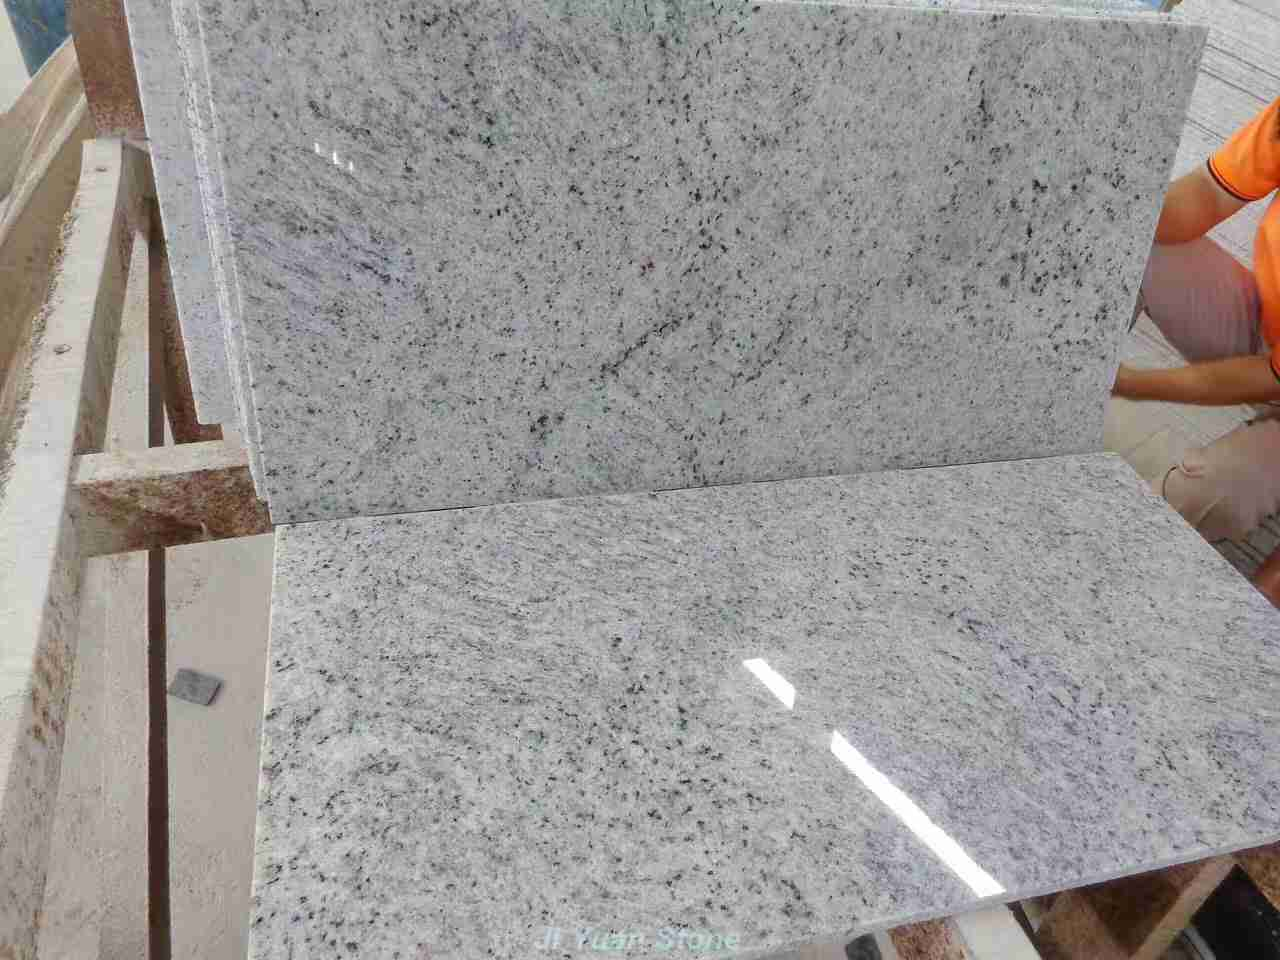 Kashmir white granite,white granite colors,white galaxy granite,cost of kitchen countertops,inexpensive countertops,affordable granite,bianco antico granite,kashmir white